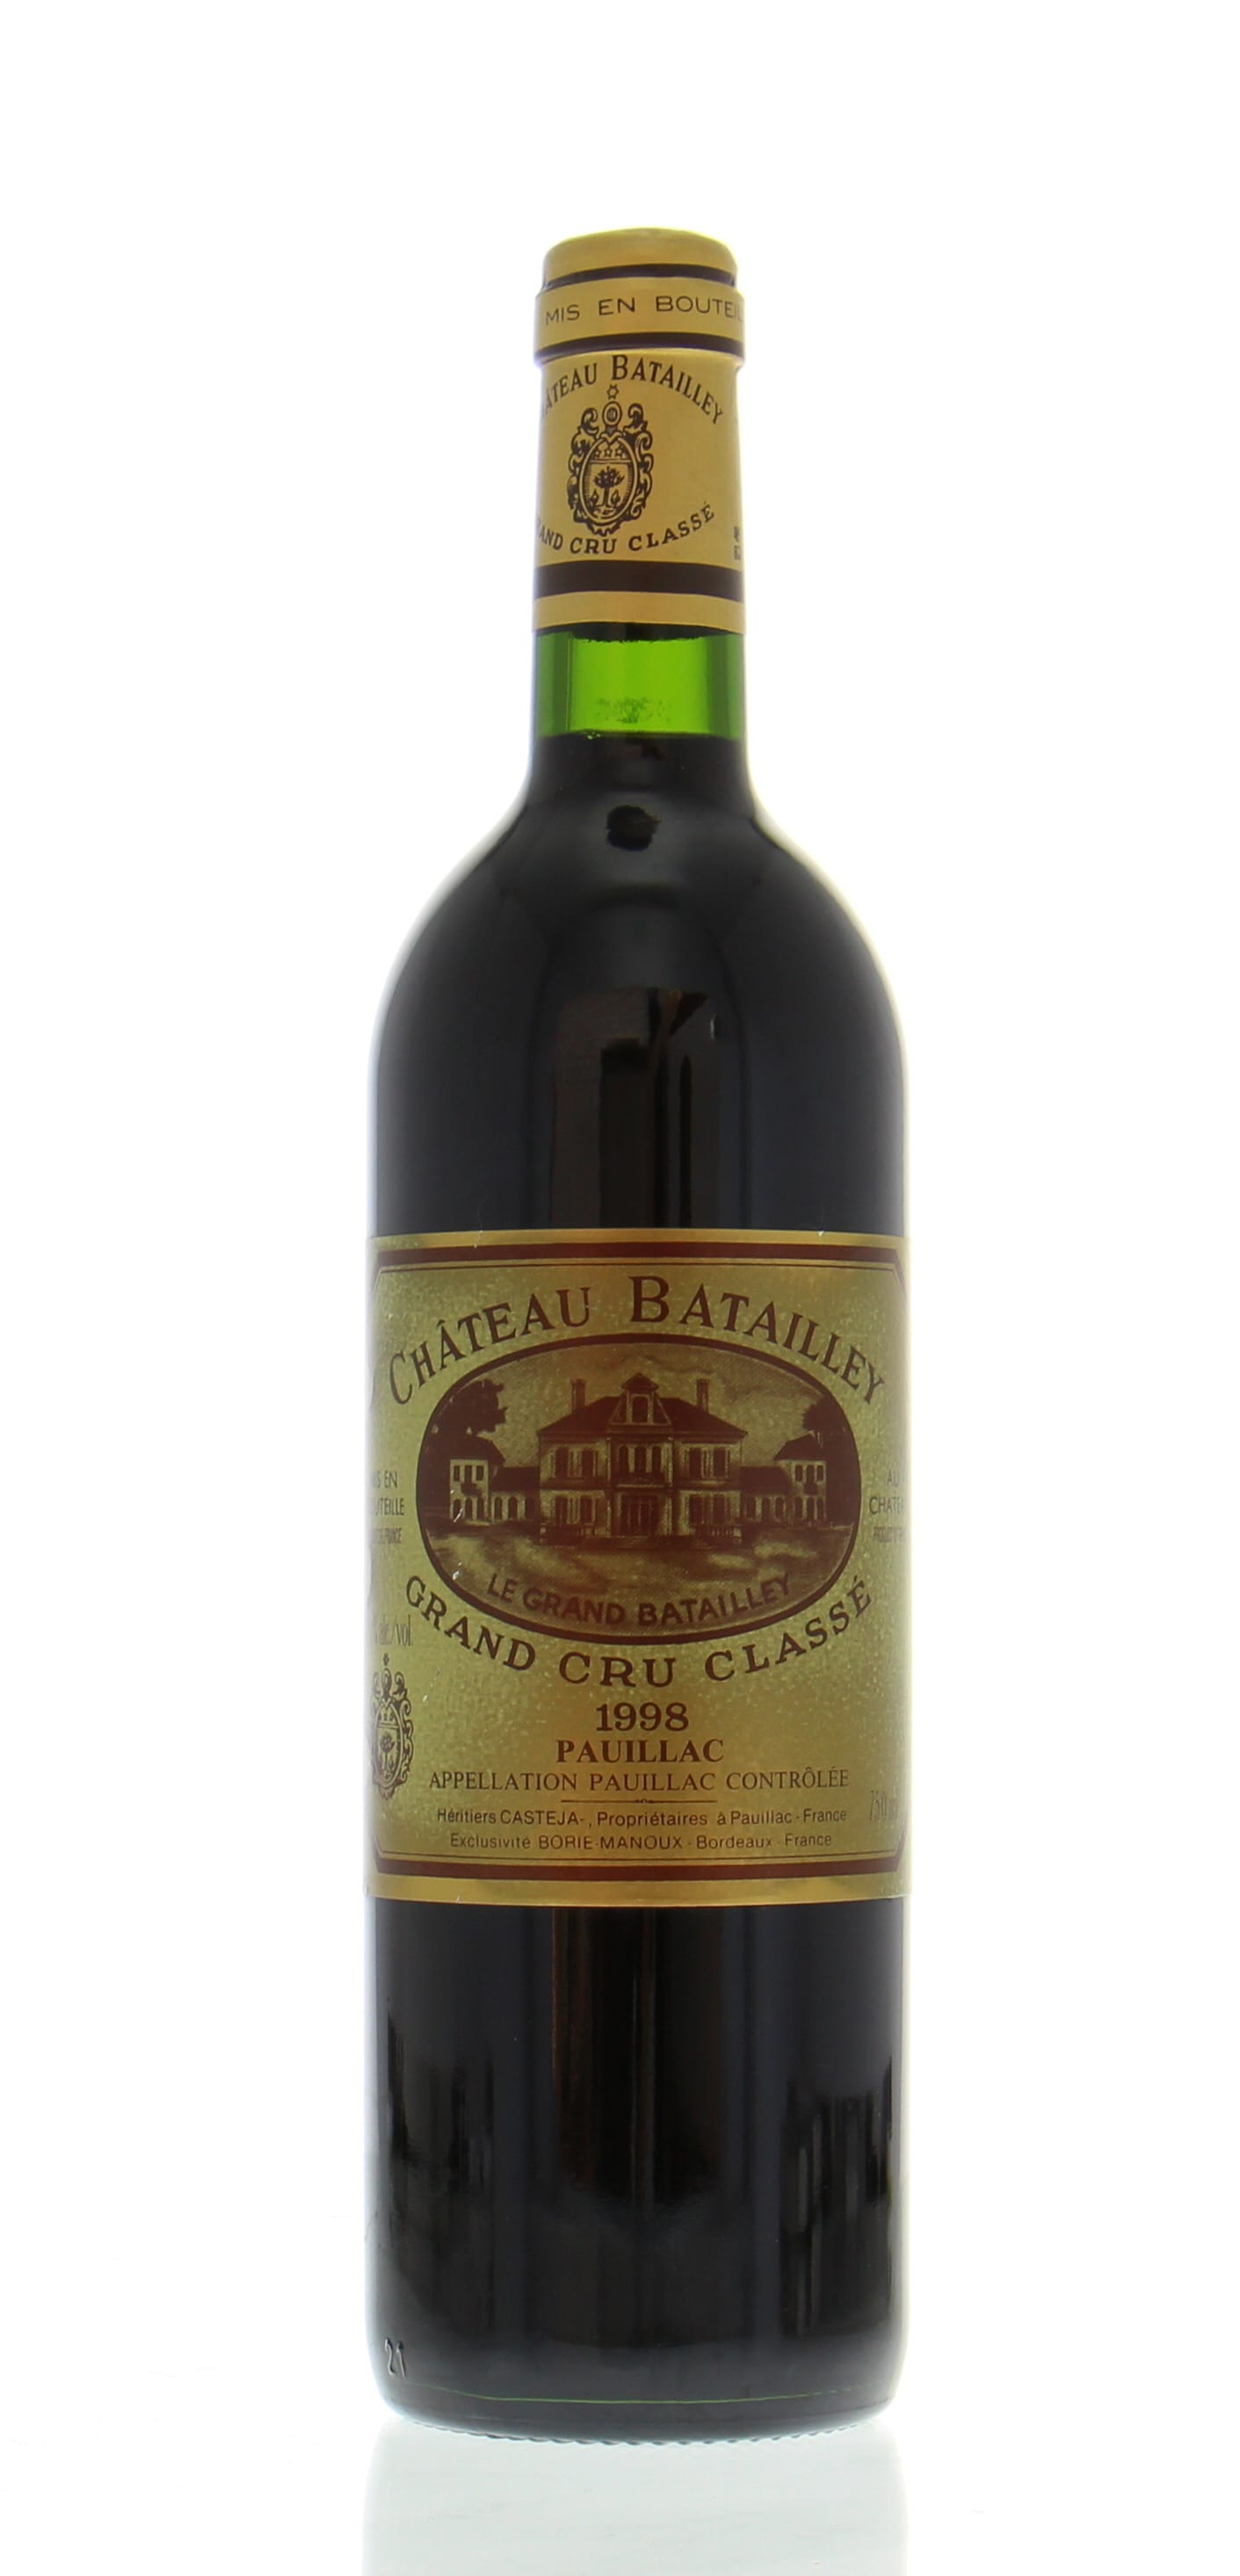 Chateau Batailley - Chateau Batailley 1998